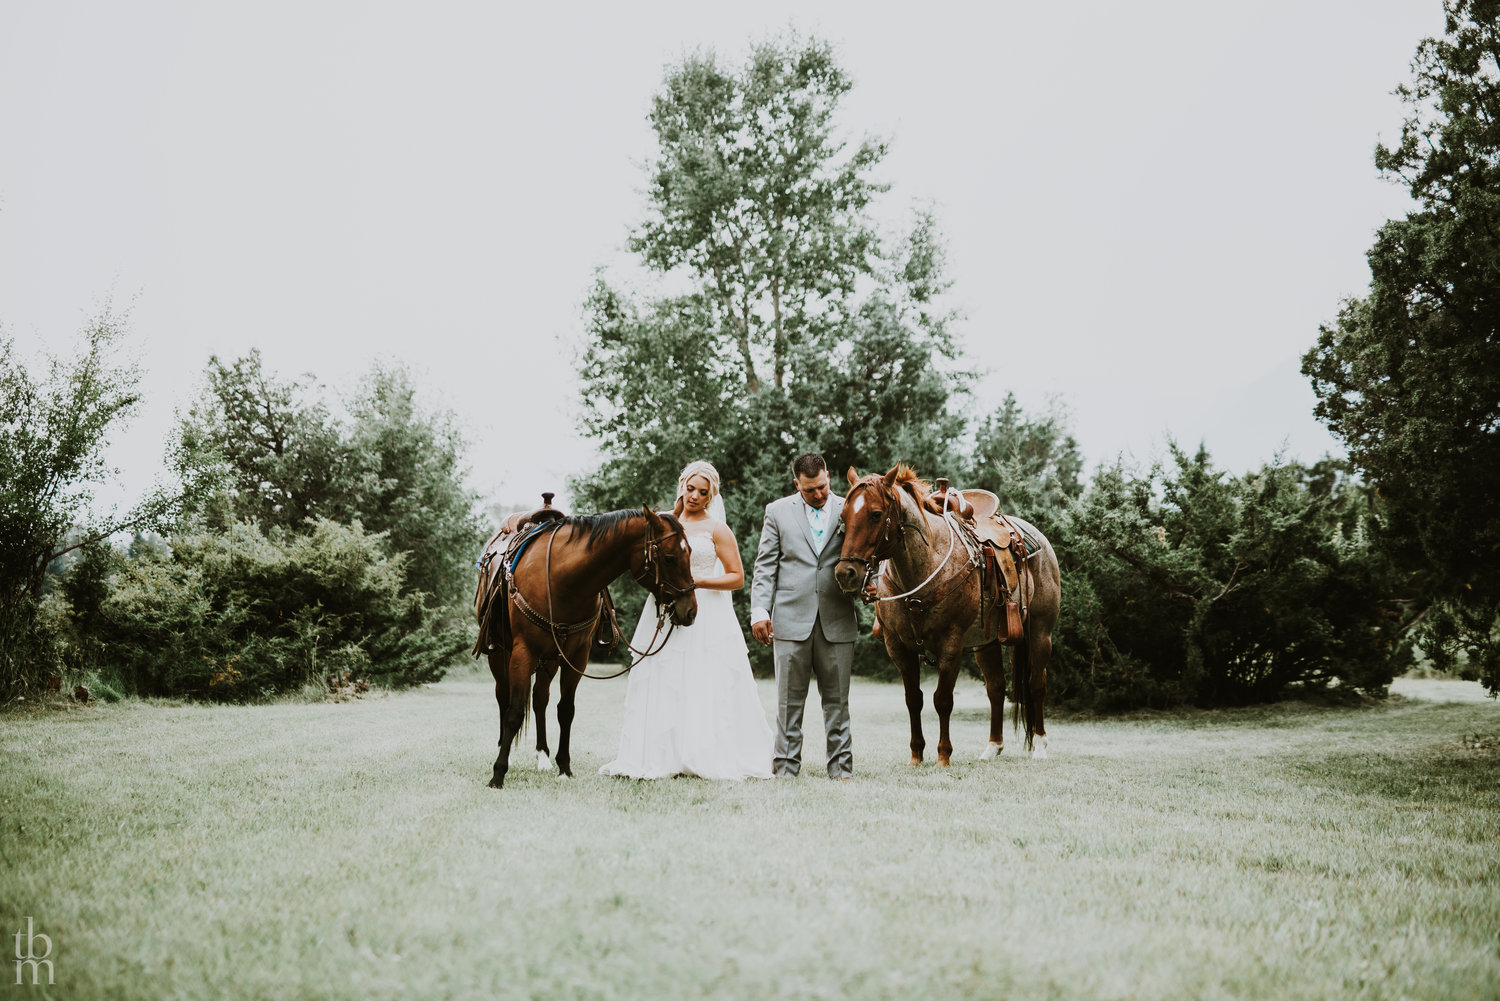 "weddings - ""…a totally unique wedding experience in one of the most beautiful ranch-style locales I've ever been…"" TripAdvisor - August 2015""…friends and family from all over the country came for my wedding and they were blown away by the gorgeous scenery…"" Facebook - September 2018"